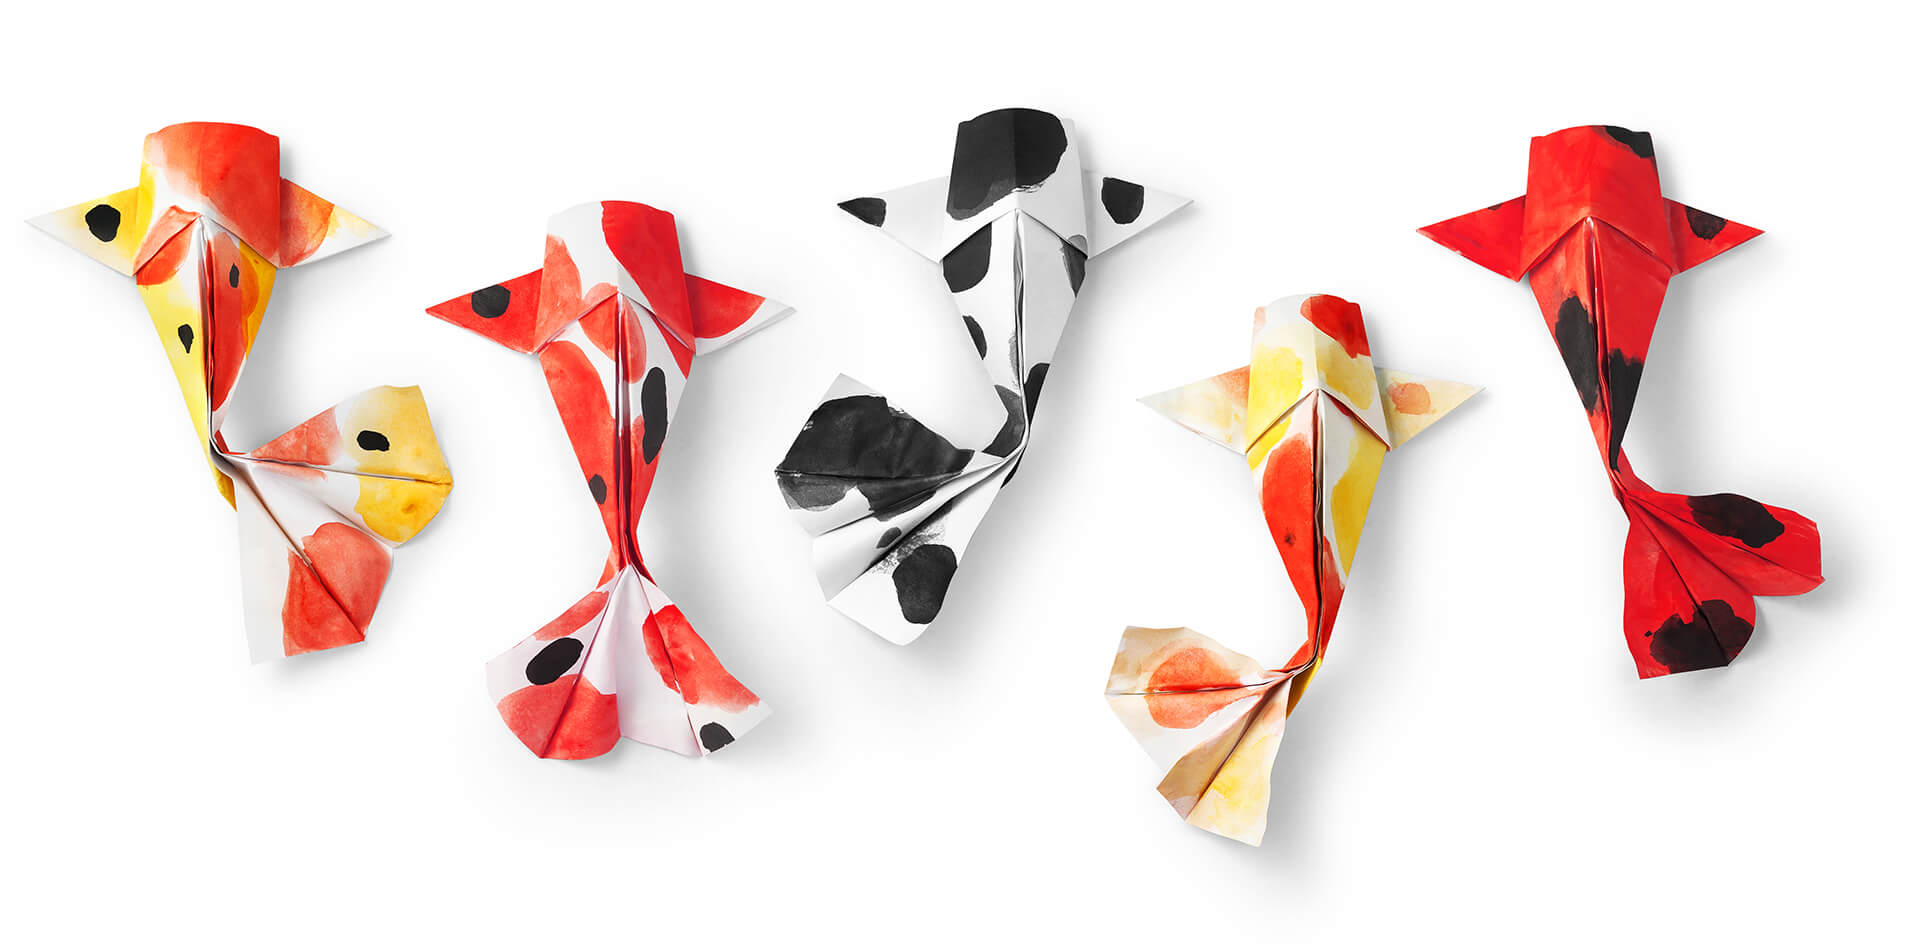 Canva_-_handmade_paper_craft_origami_koi_carp_fish_on_white_background